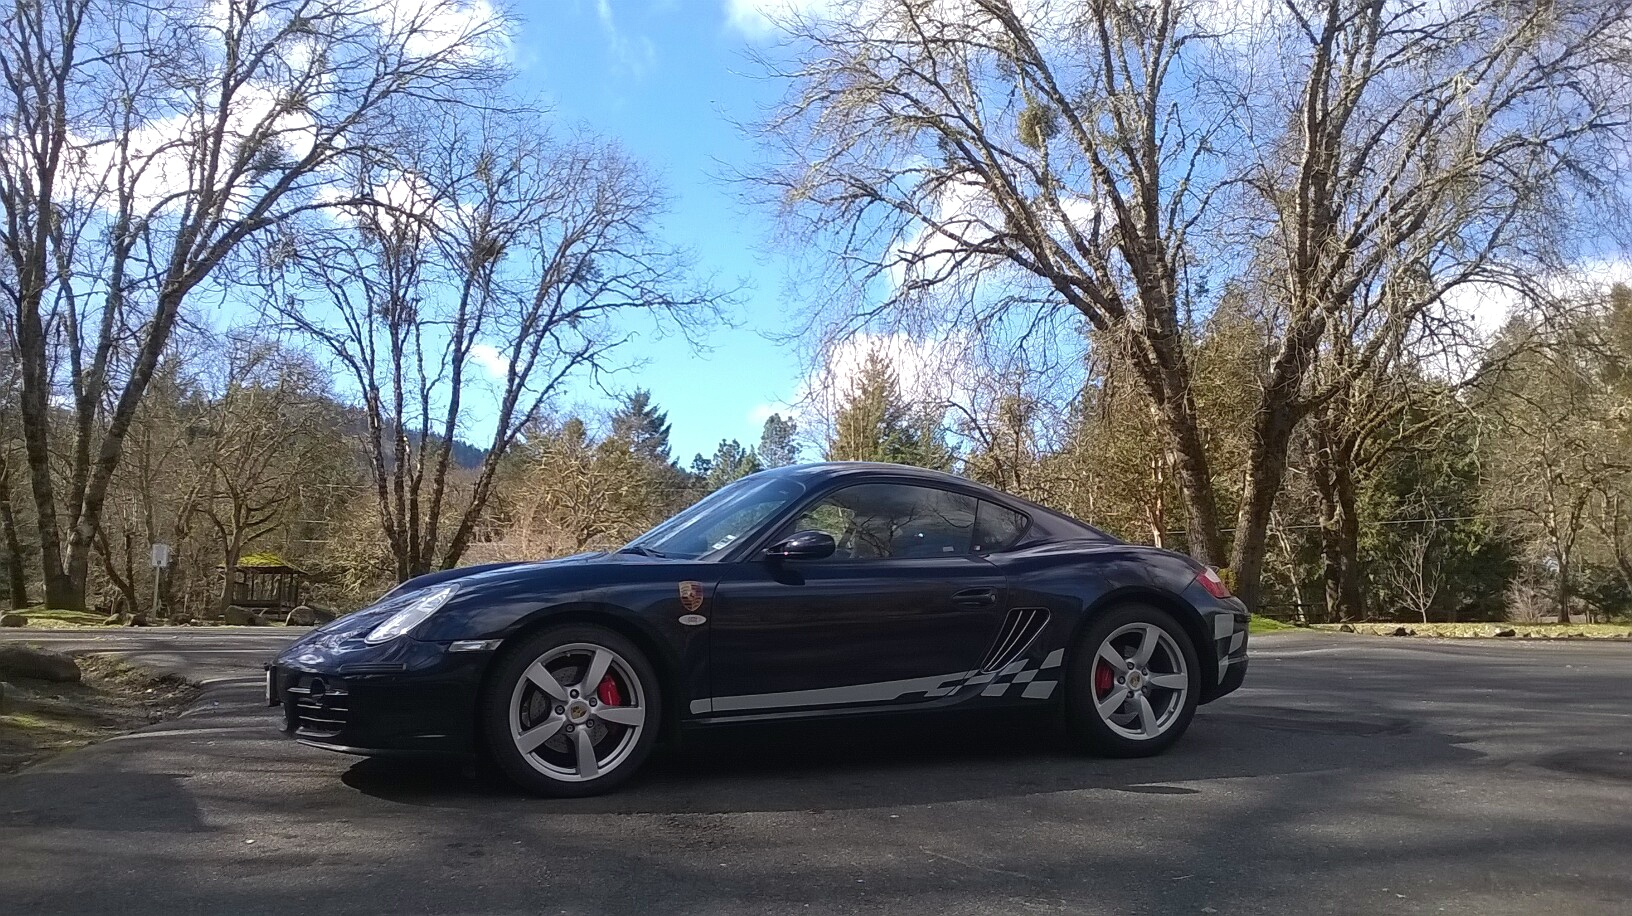 Stephen-987-cayman-s-tune